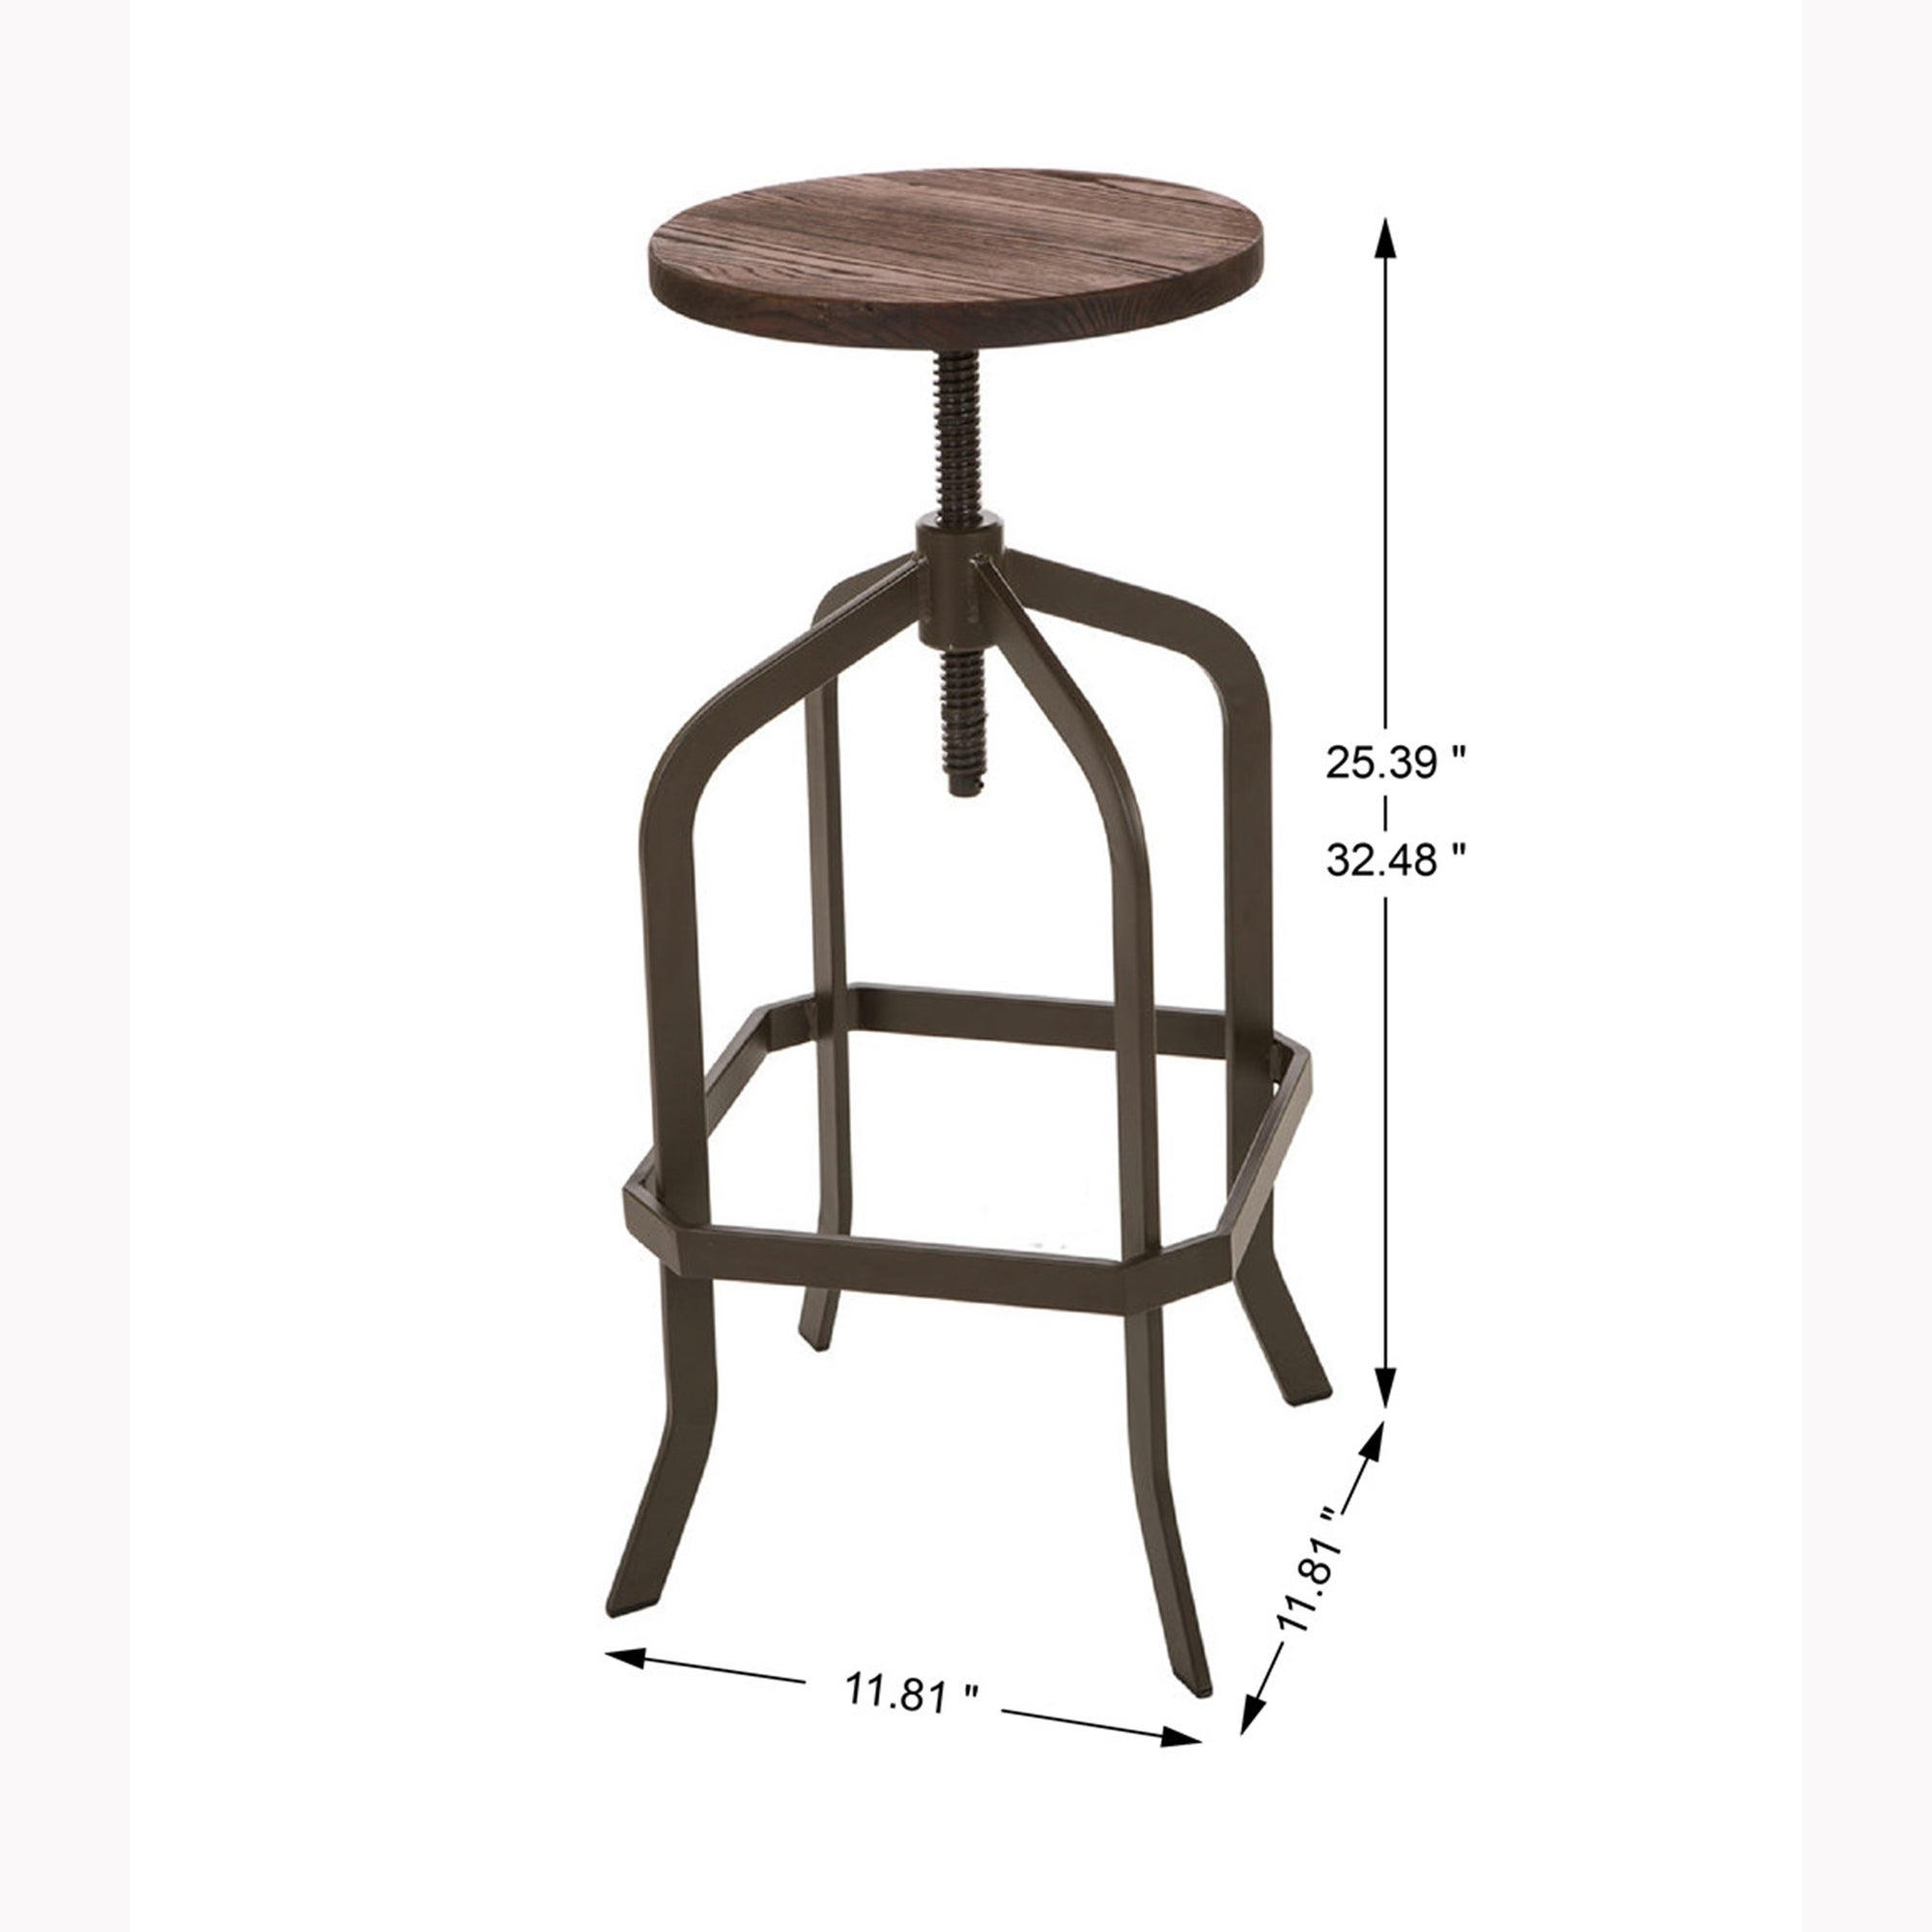 Stupendous Glitzhome Adjustable Metal Revolving Stool With Solid Wood Seat Squirreltailoven Fun Painted Chair Ideas Images Squirreltailovenorg